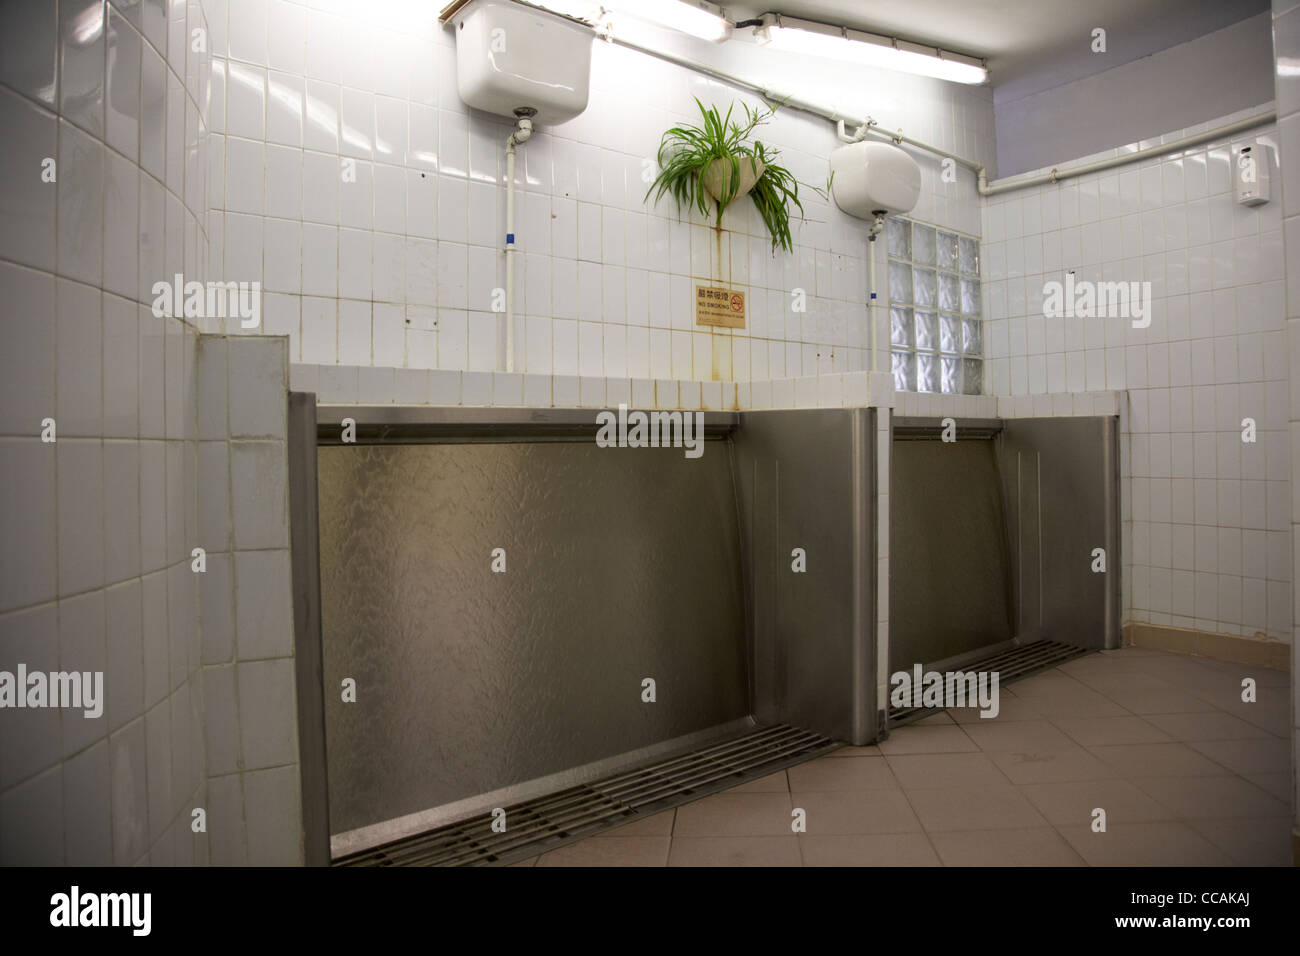 sanistall public waterfall urinals in a public toilet hong kong hksar stock photo royalty free. Black Bedroom Furniture Sets. Home Design Ideas